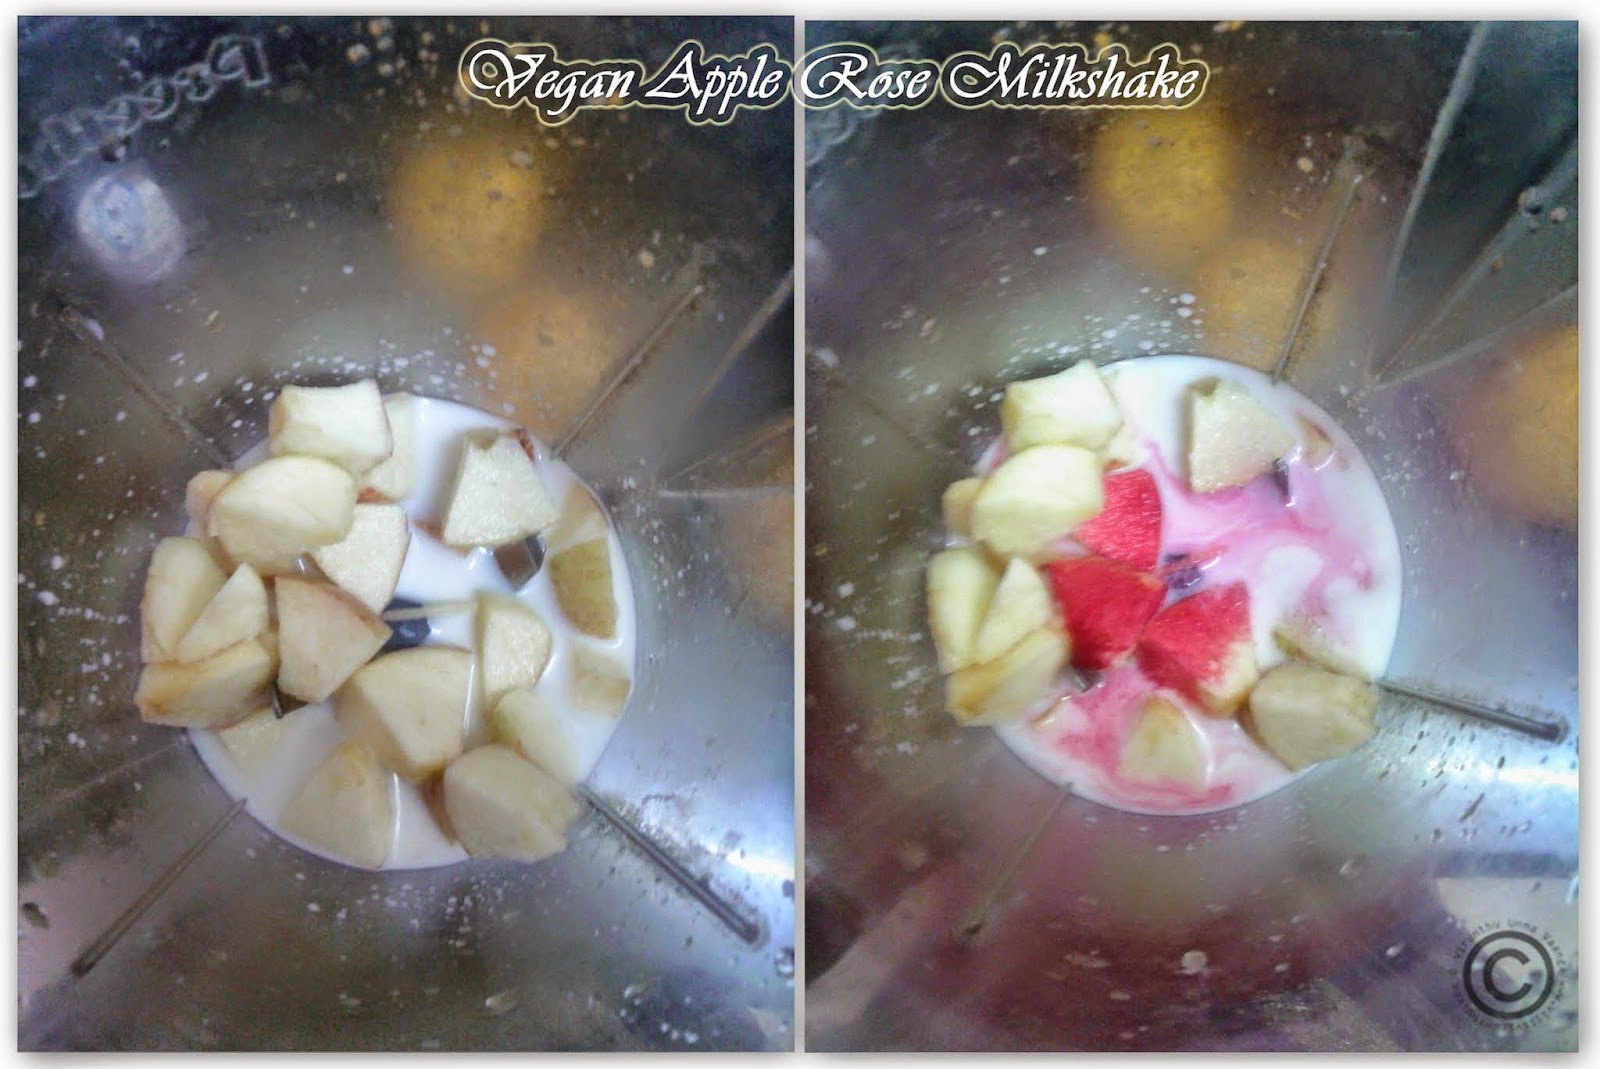 vegan-rose-milkshake-recipe